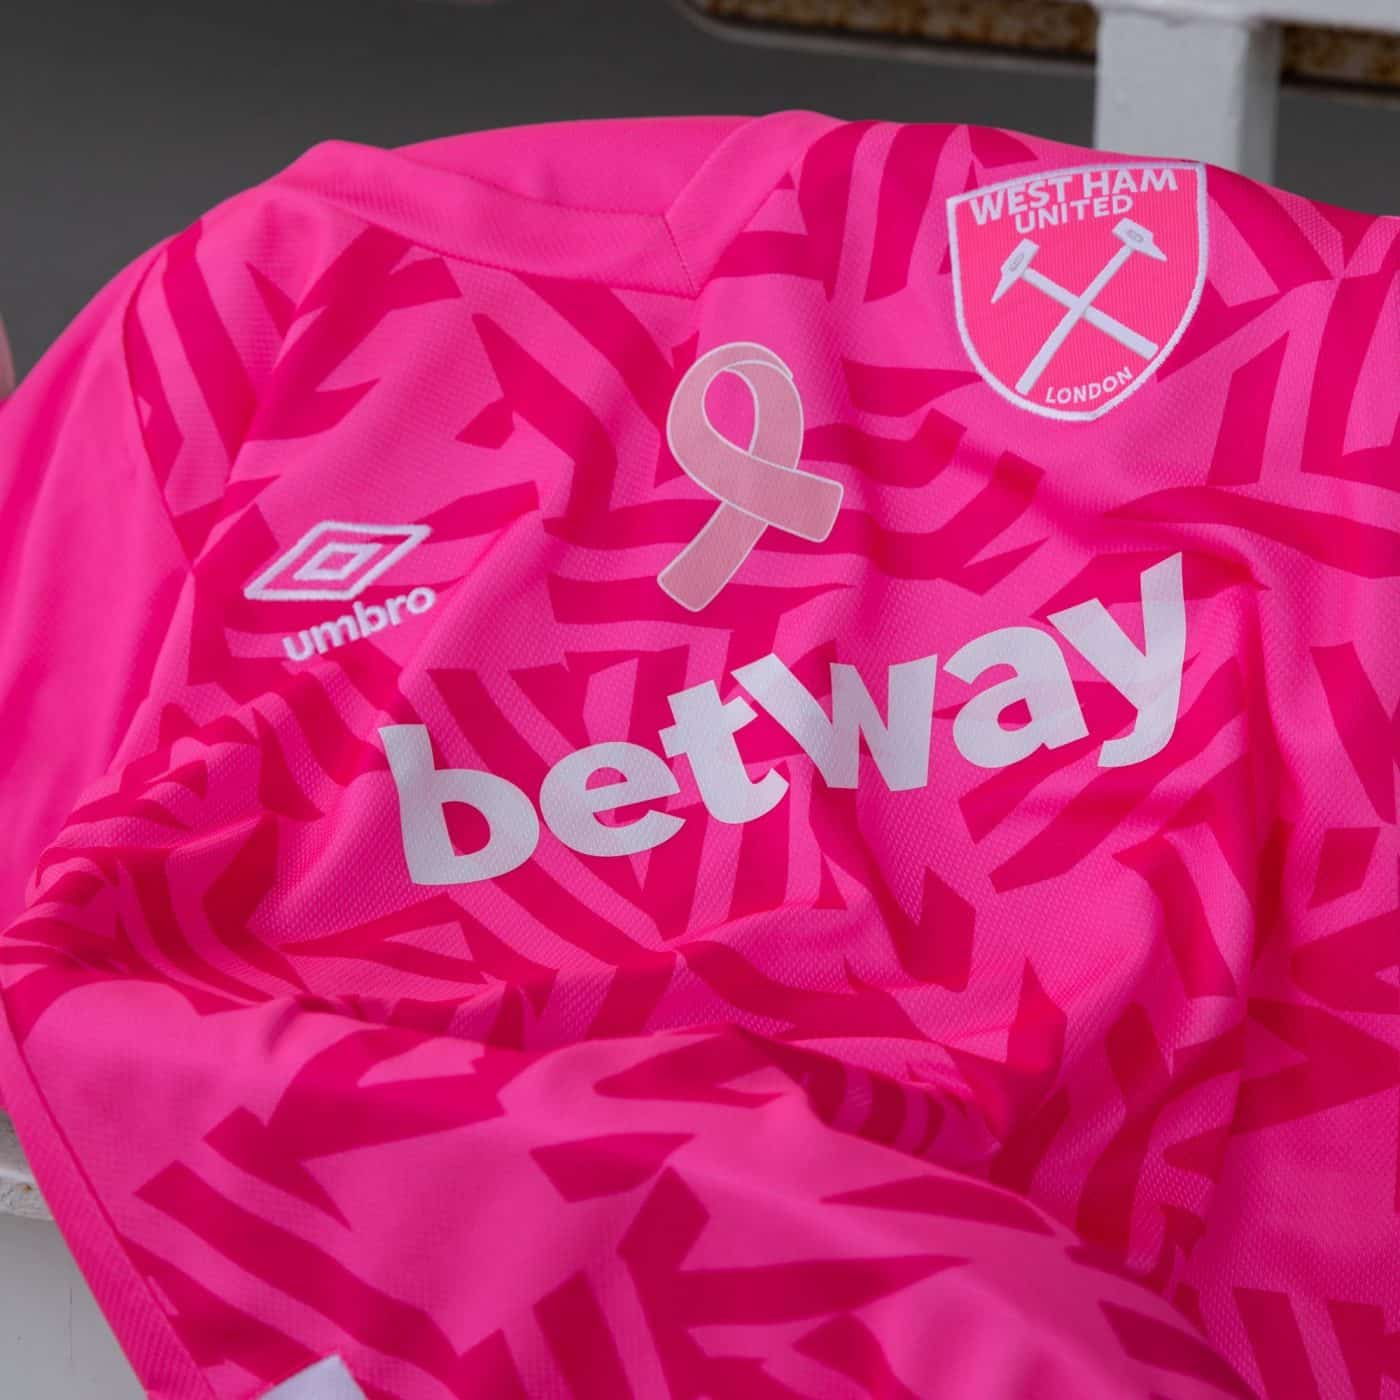 maillot-rose-swet-ham-united-cancer-du-sein-octobre-rose-1